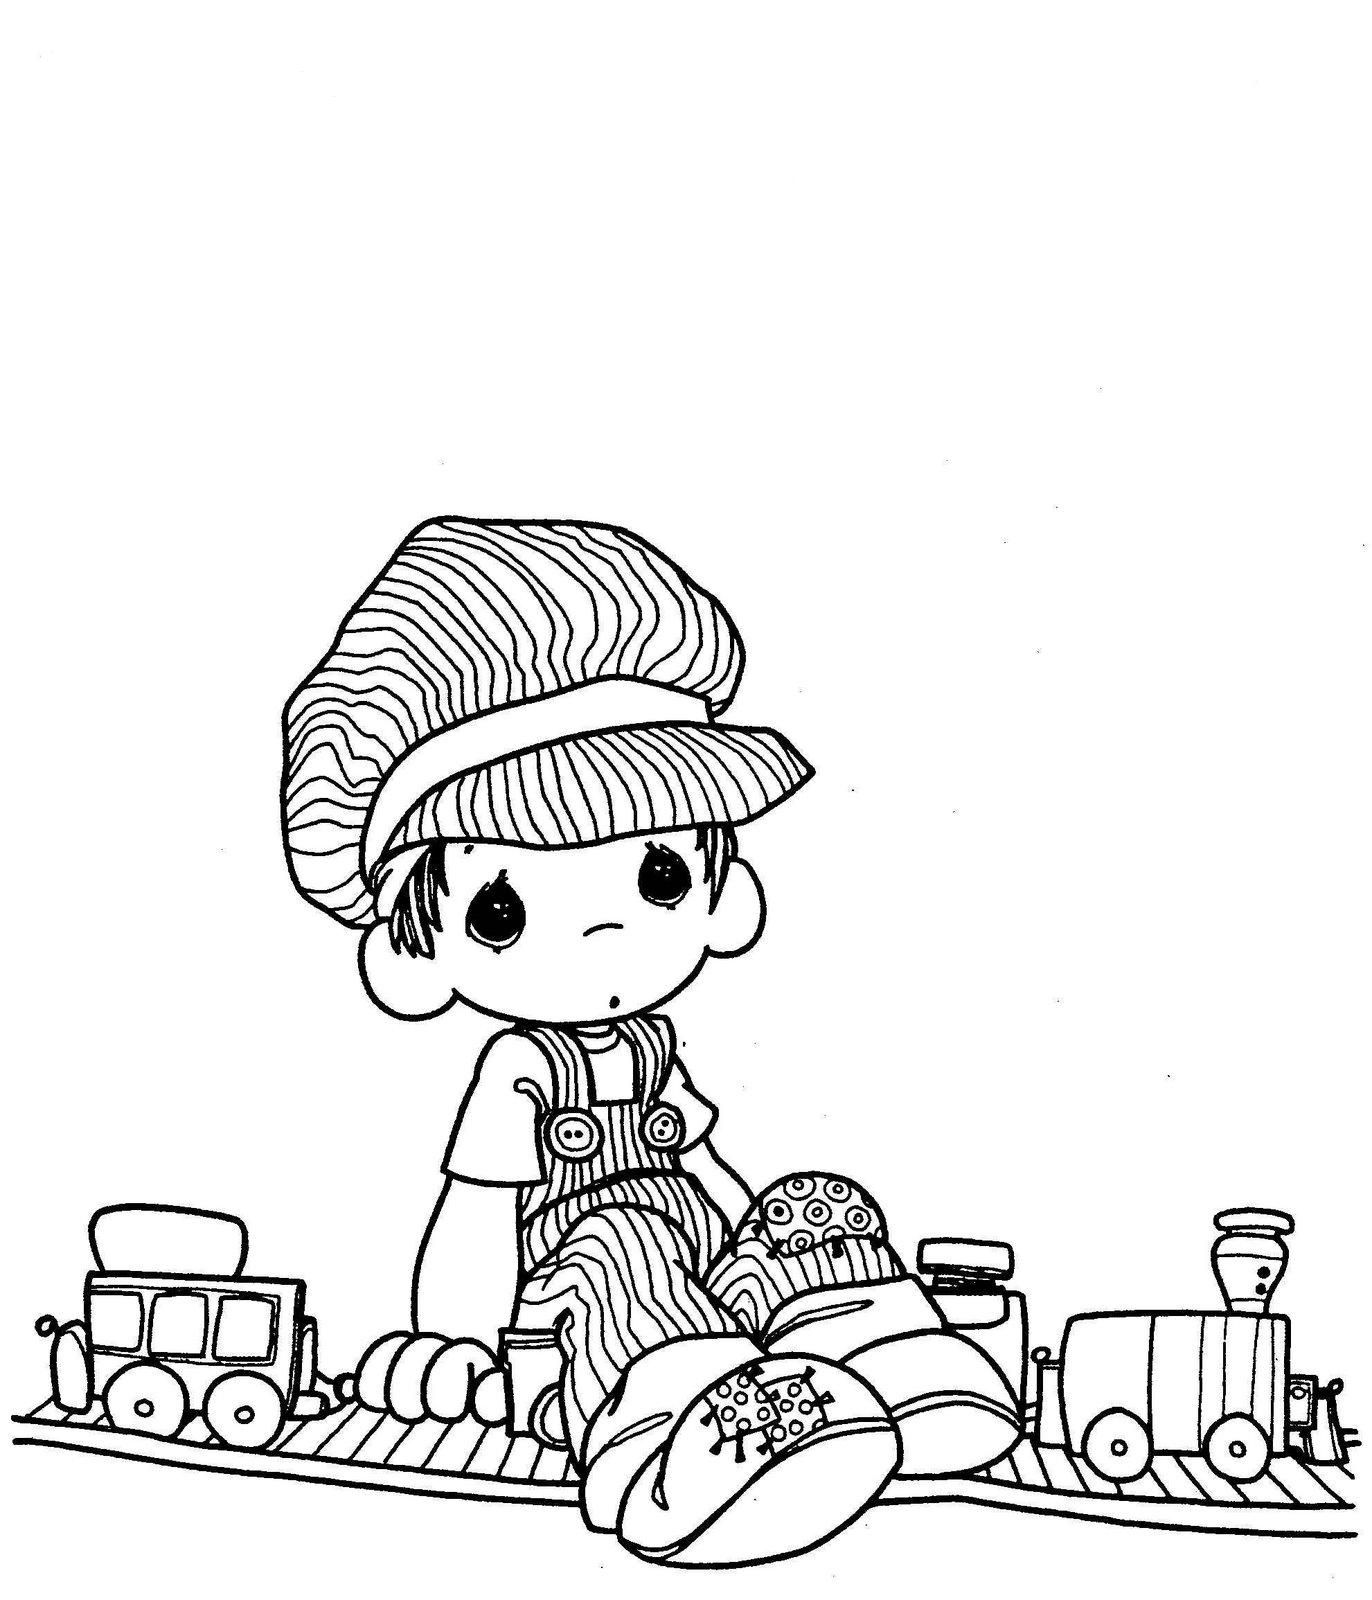 Choo Choo! - Precious Moments coloring pages. | coloring pages ...